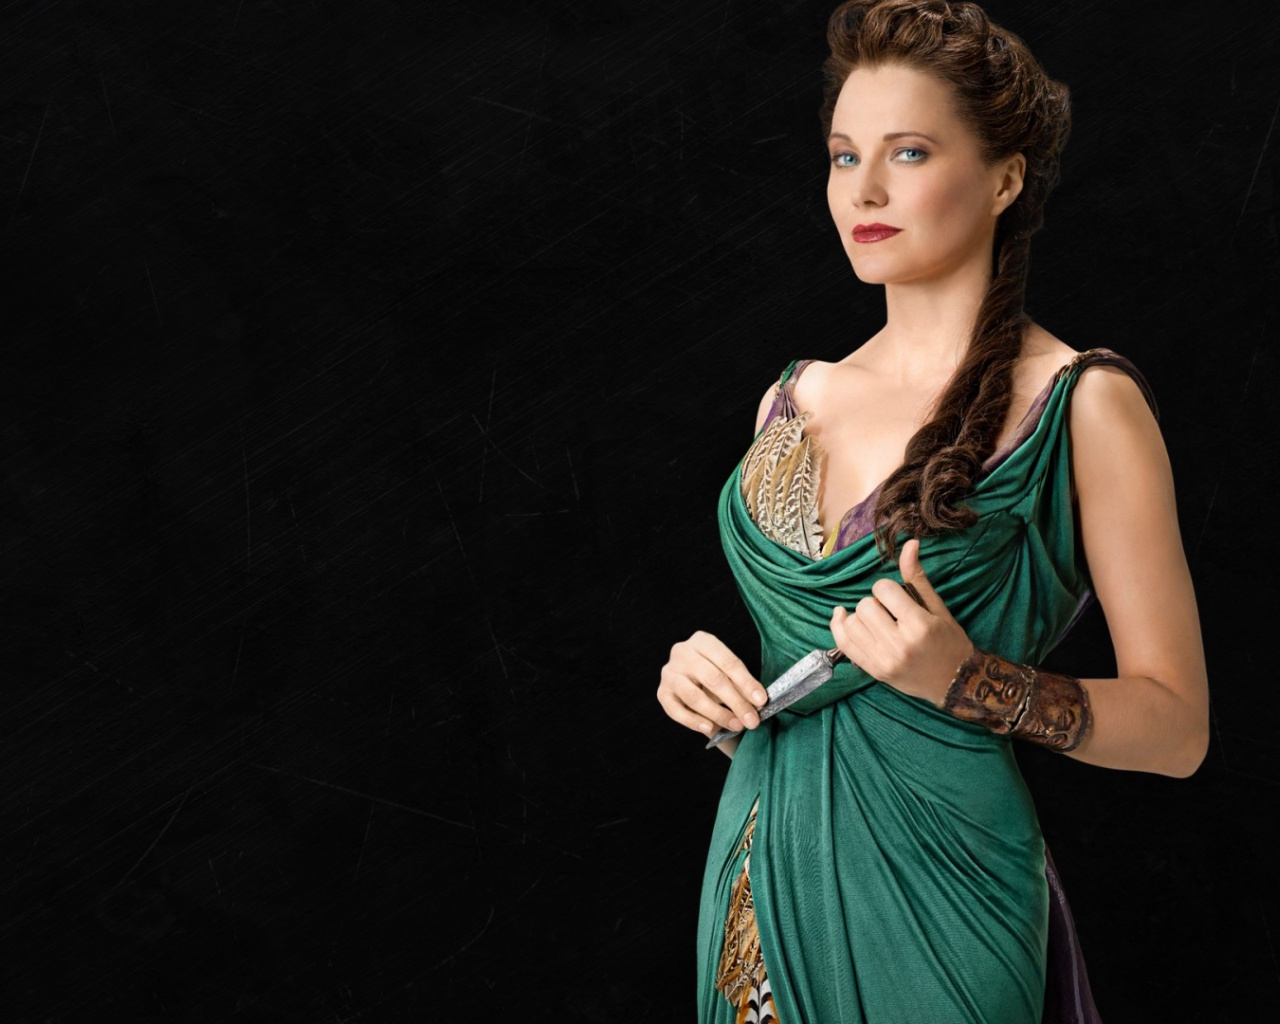 Spartacus lucy lawless and jaime murray 03 - 2 part 4